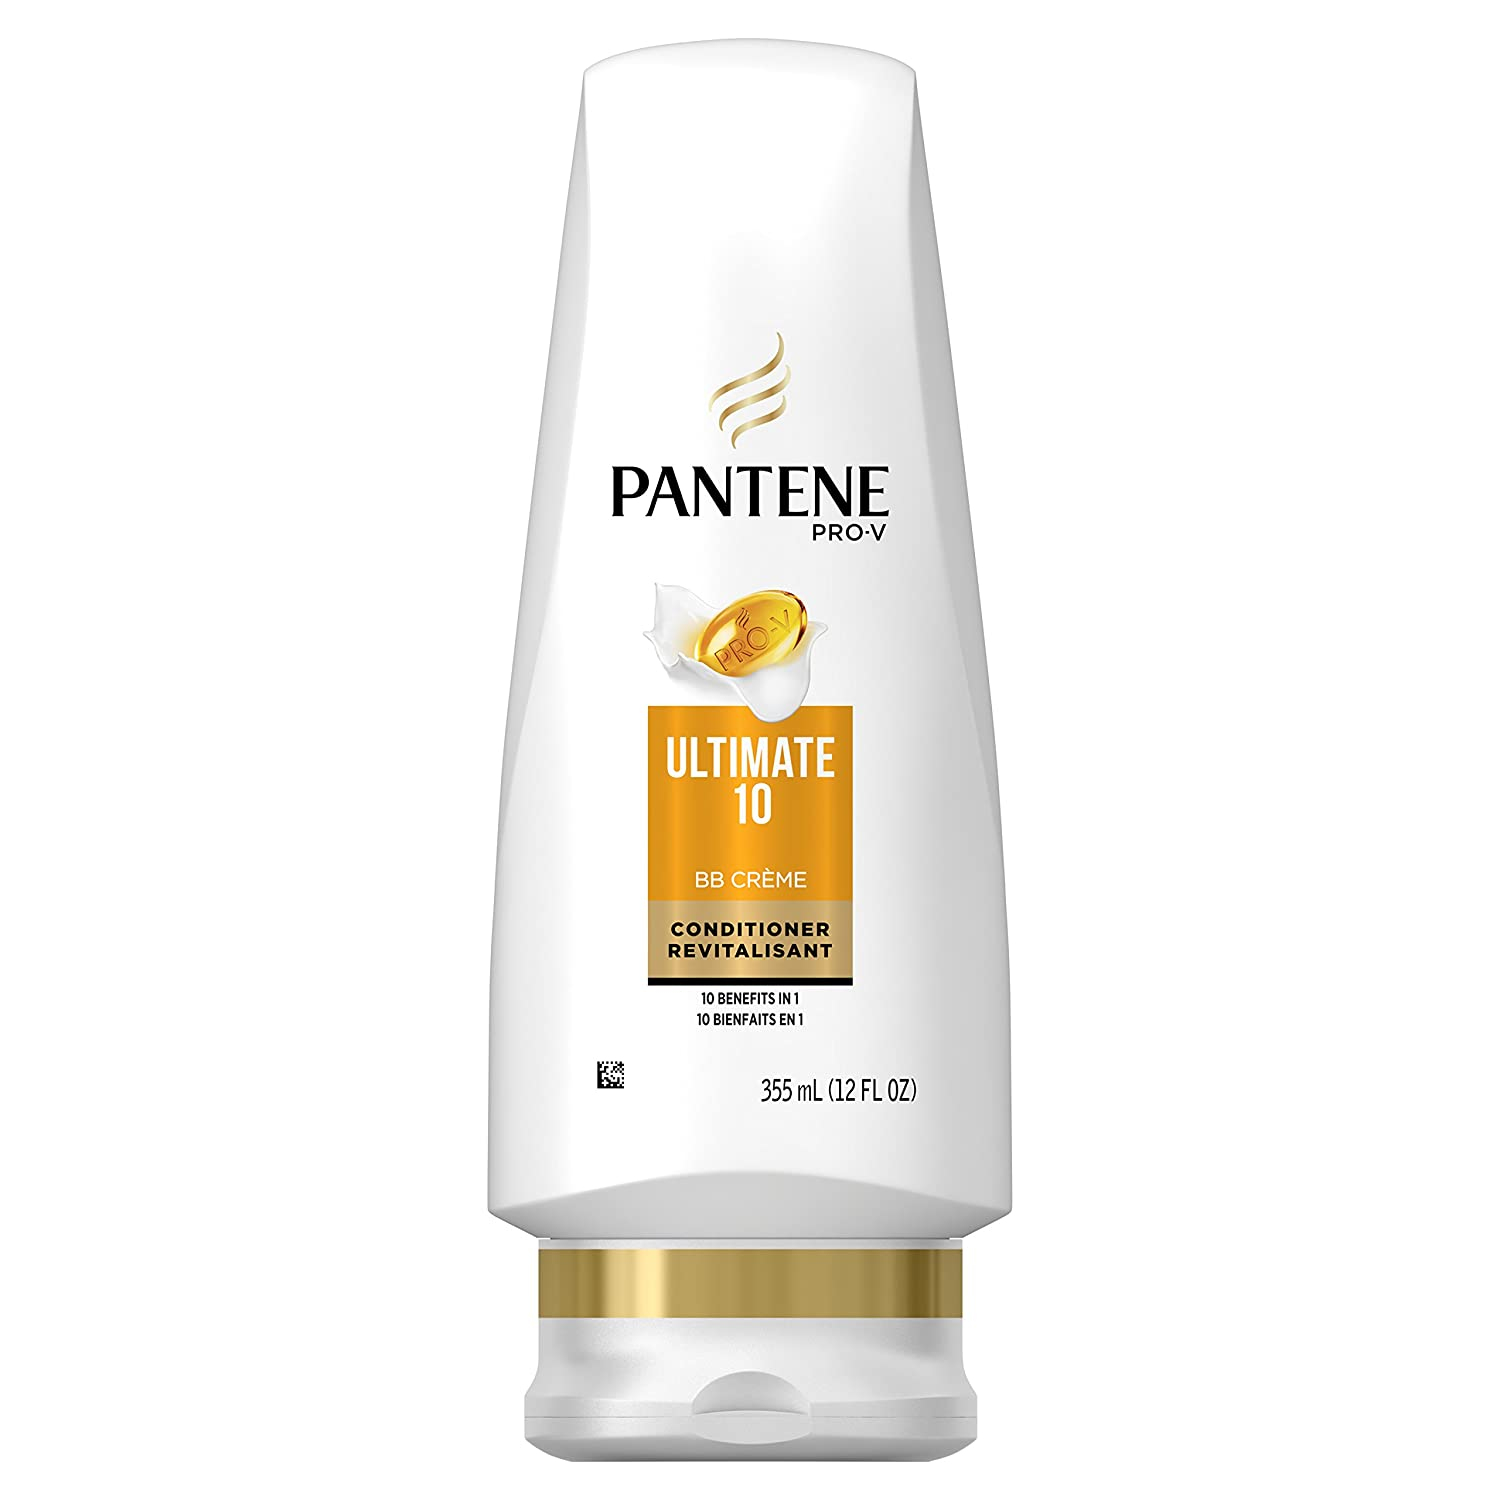 Pantene Pro-V Ultimate 10 Conditioner, 355 mL